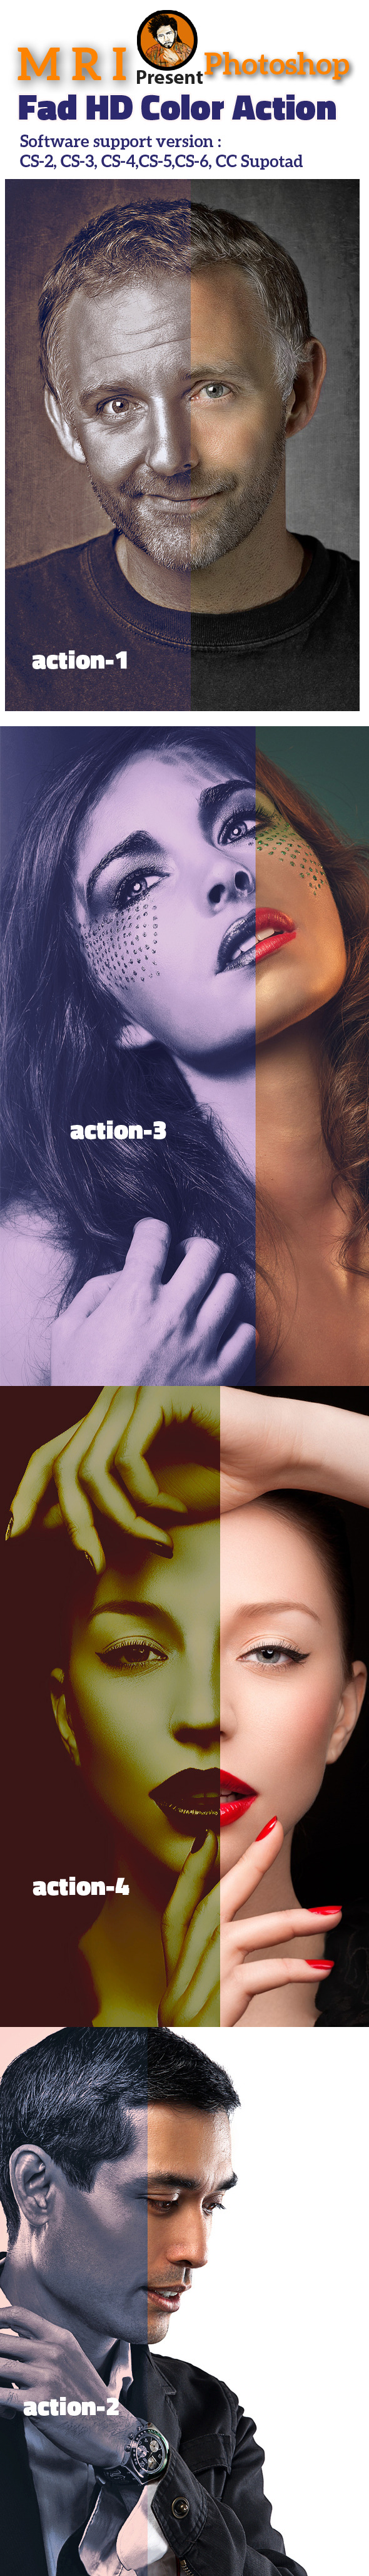 Fad HD Color Action - Photo Effects Actions